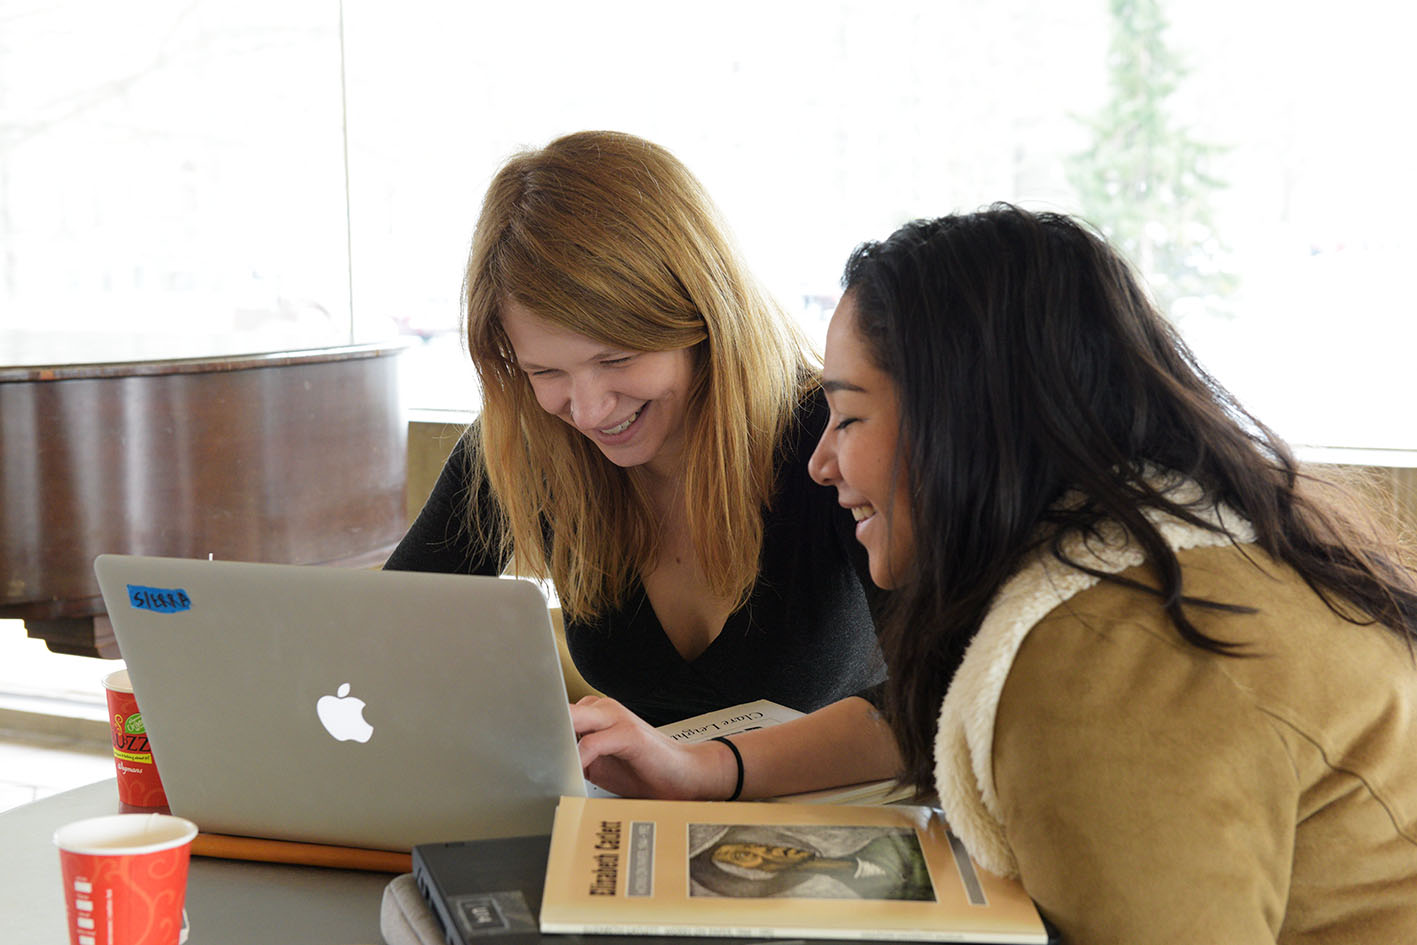 Two women looking at a laptop, smiling. ©Wikimedia